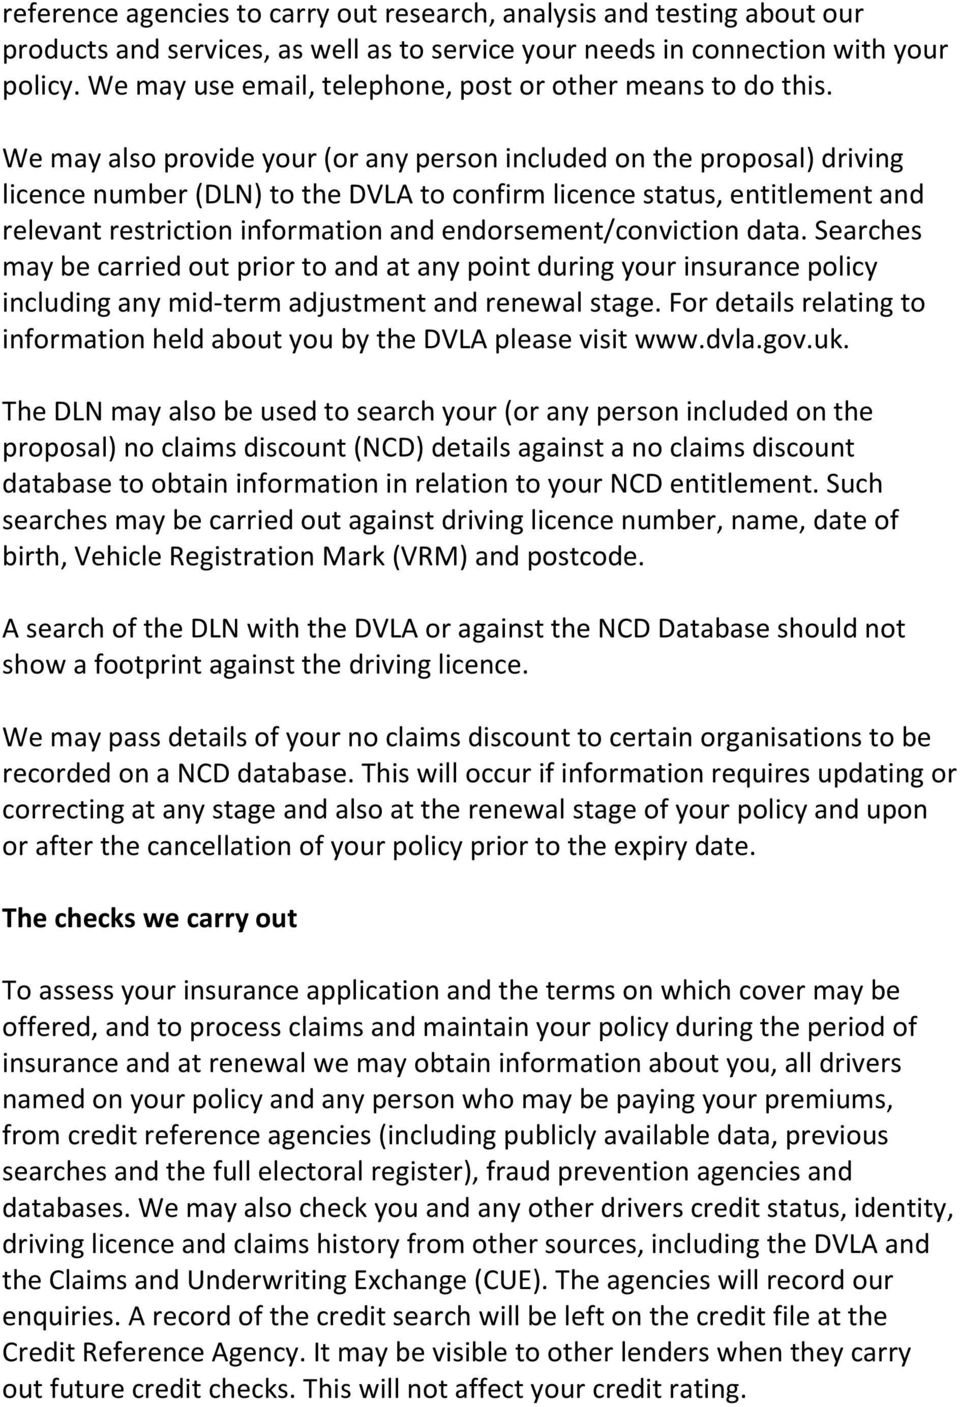 We may also provide your (or any person included on the proposal) driving licence number (DLN) to the DVLA to confirm licence status, entitlement and relevant restriction information and